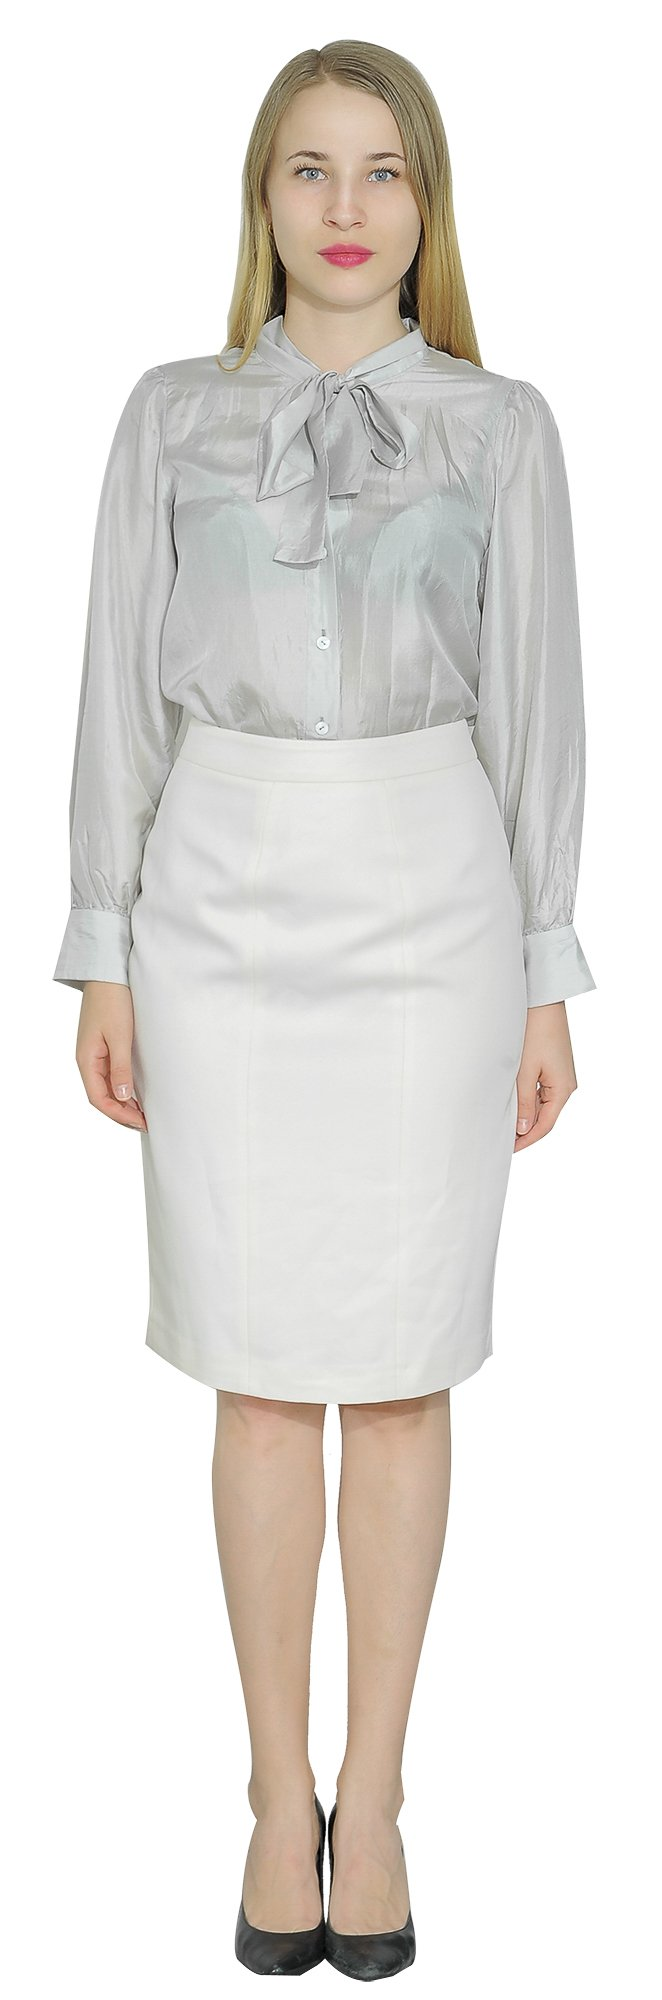 Marycrafts Women's Lined Pencil Skirt 4 Work Business Office 10 Beige by Marycrafts (Image #3)